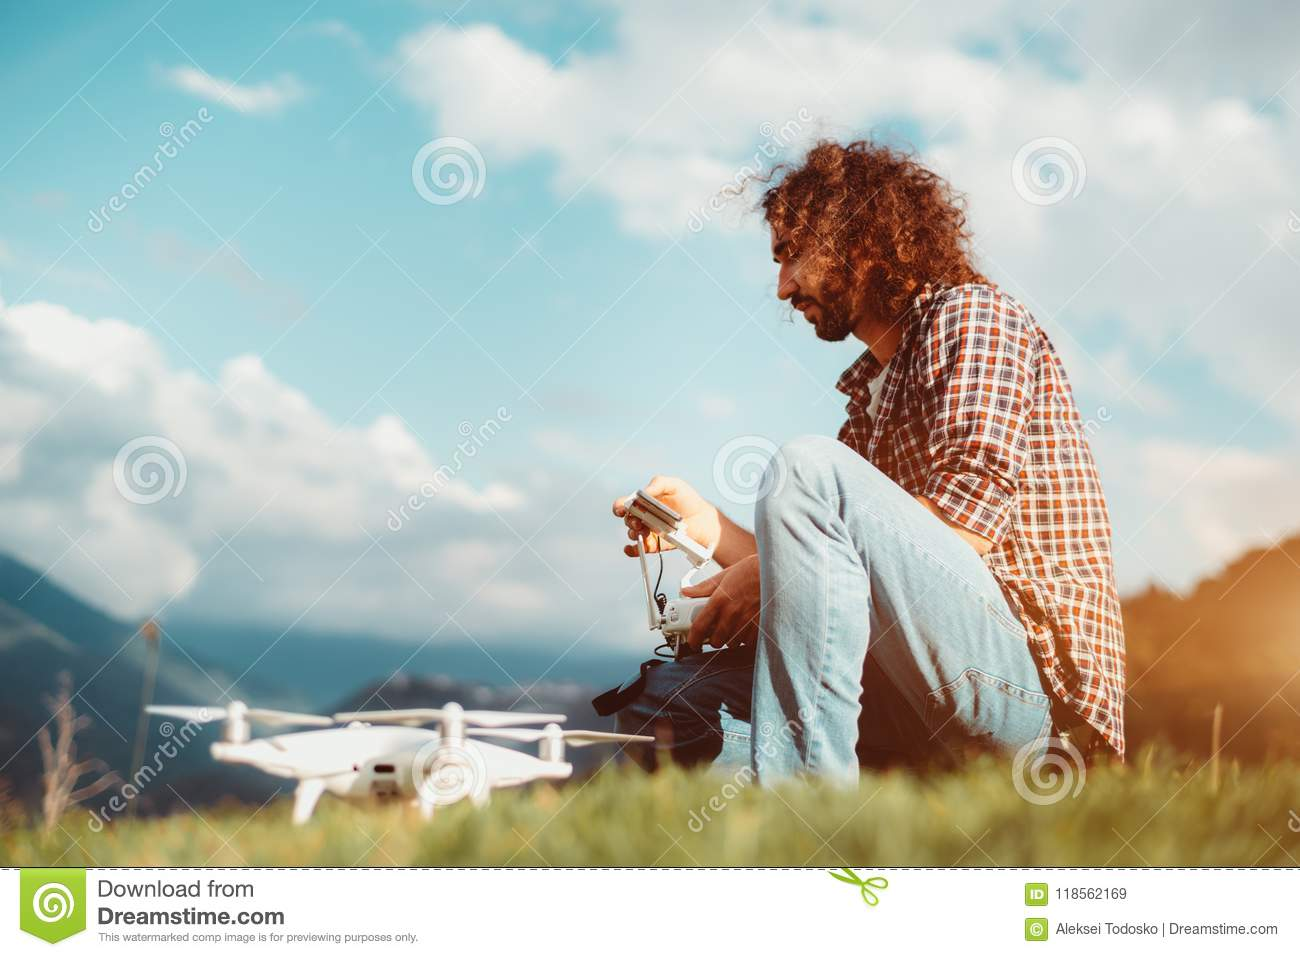 Bearded Man Is Programming His Drone Outdoors Before